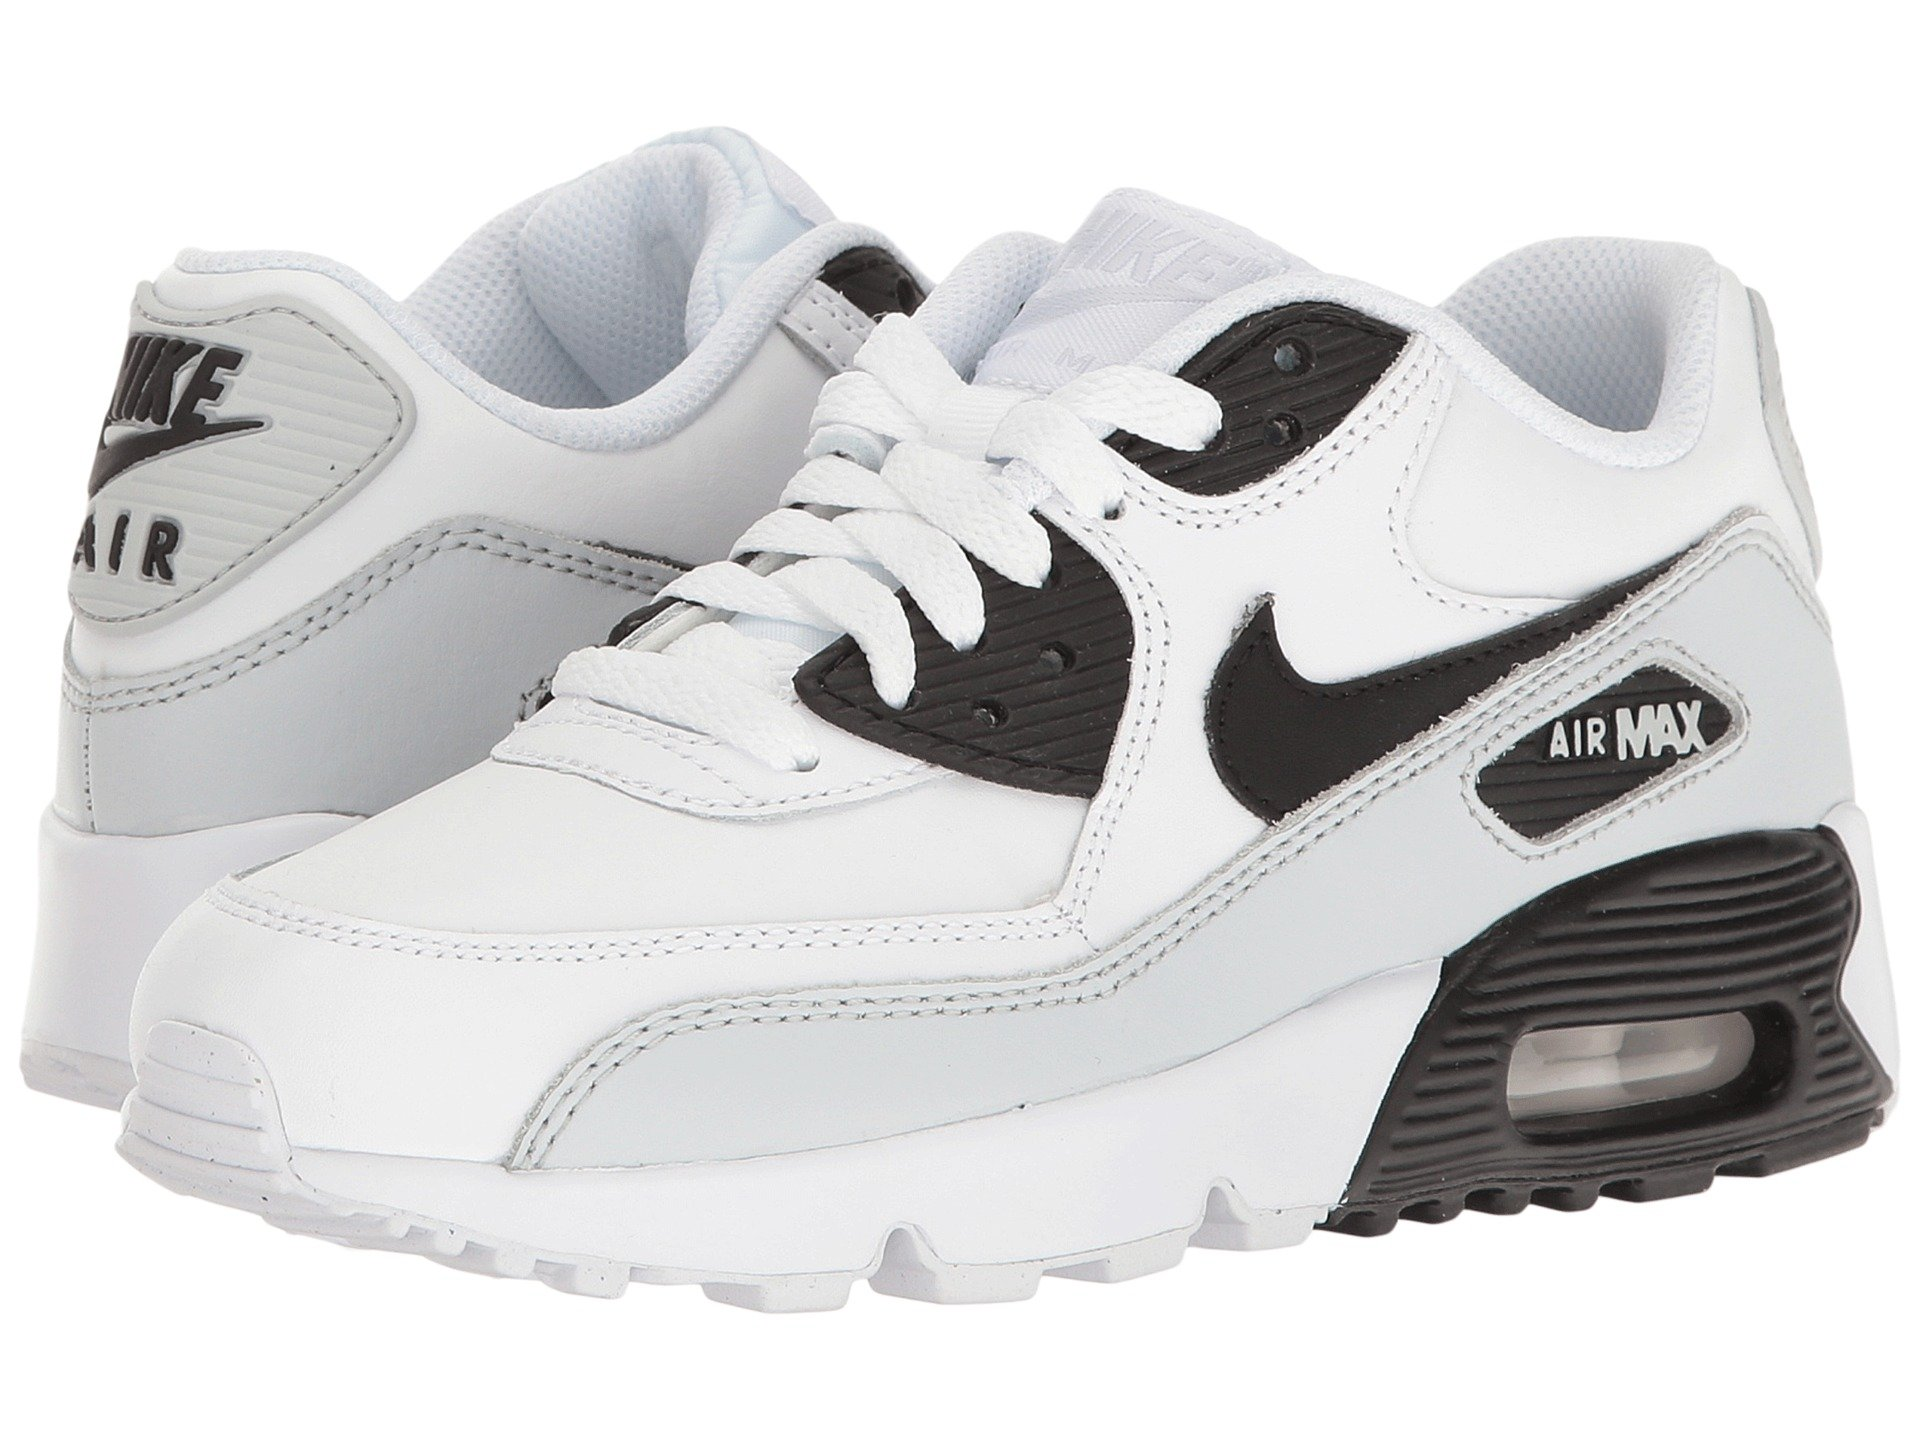 nike air max 1 ultra moire zappos shoes